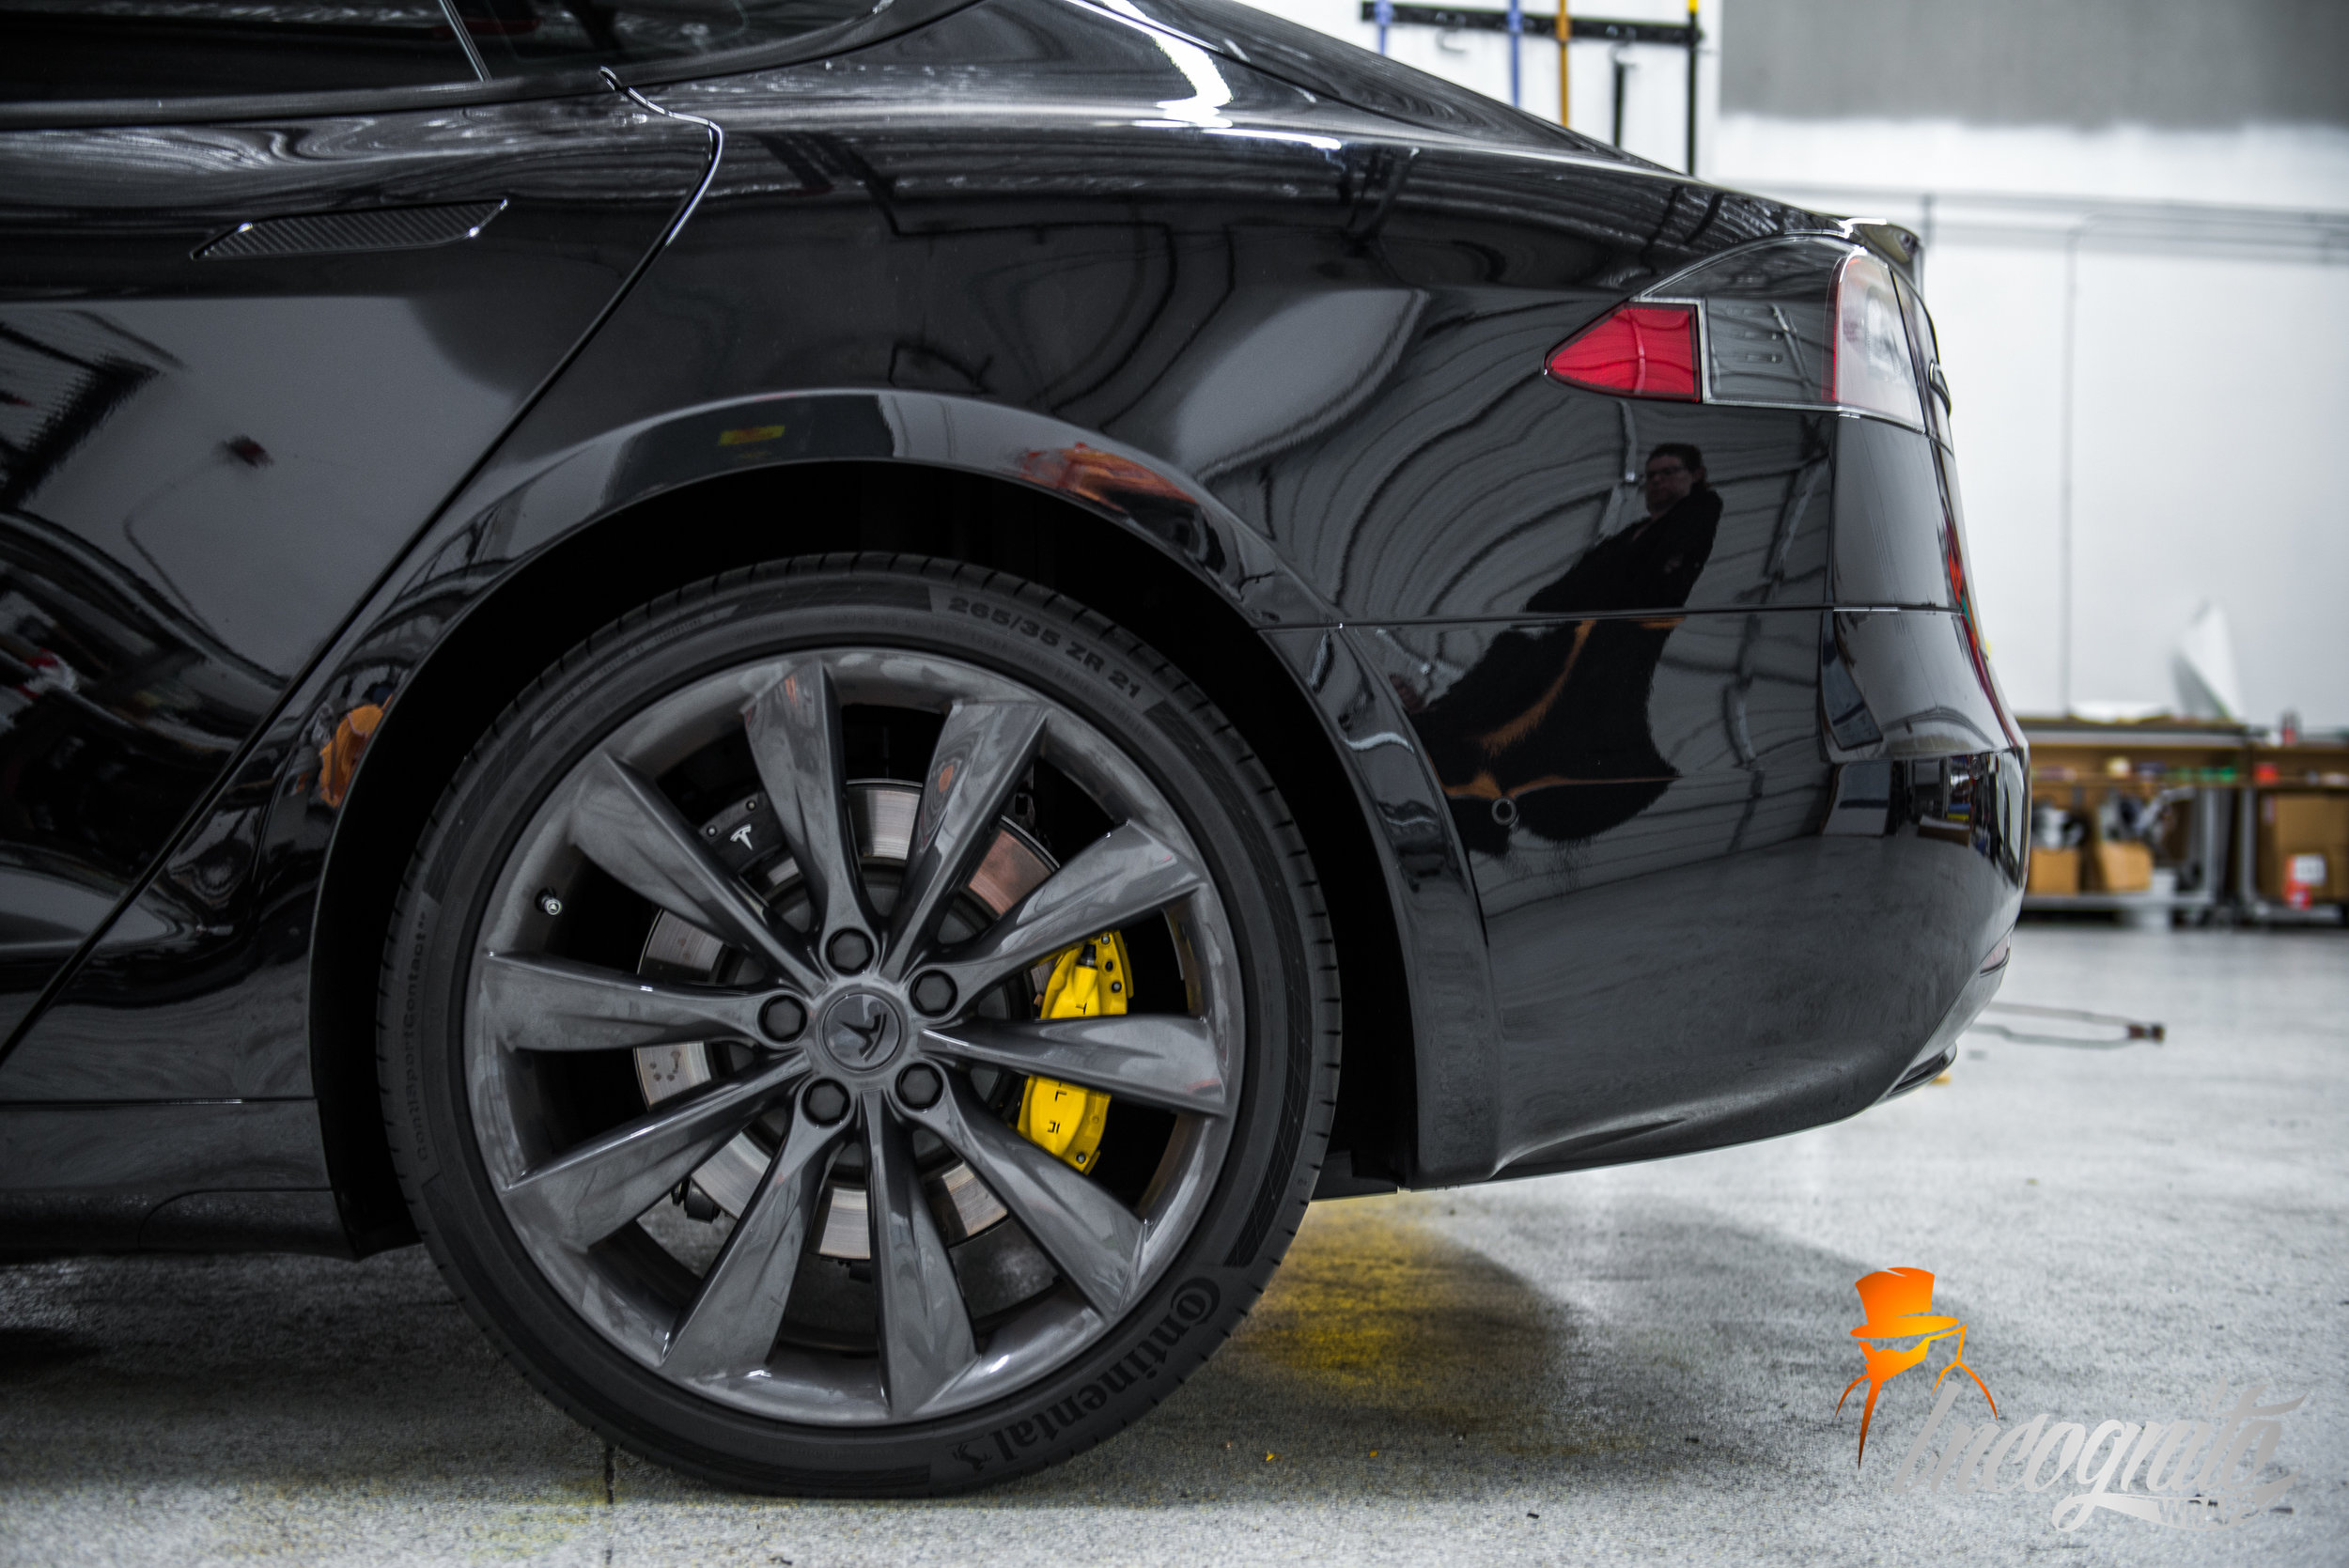 Tesla Model S - Full Chrome Delete and Yellow Caliper Wraps